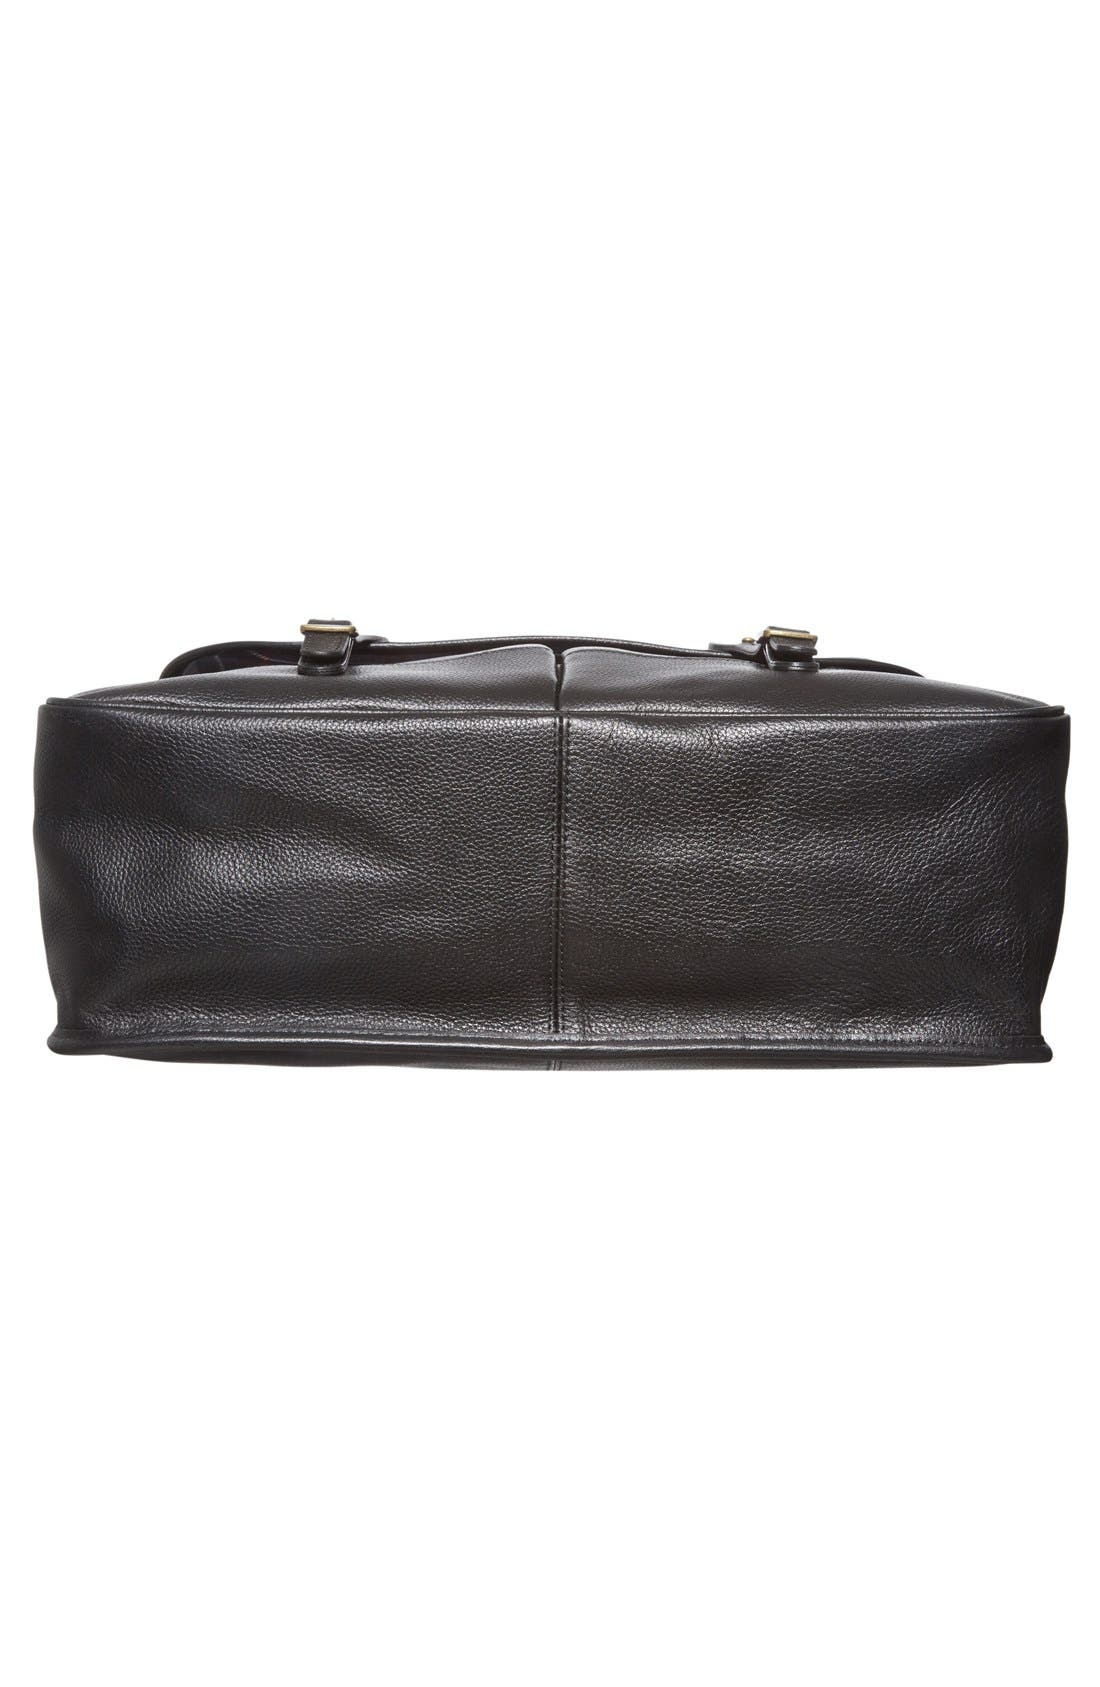 Leather Briefcase,                             Alternate thumbnail 6, color,                             Black